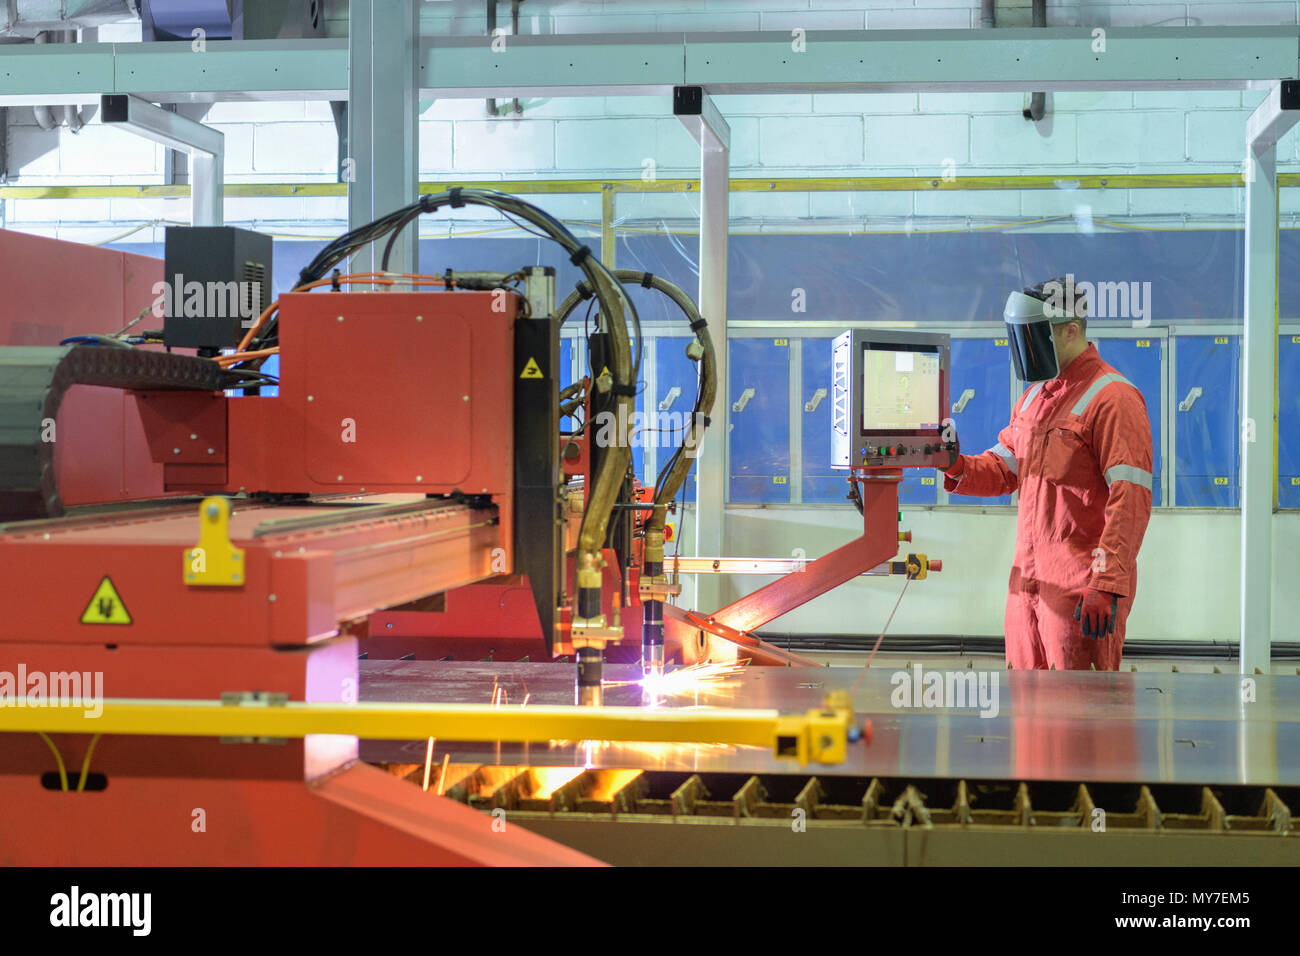 Worker operating plasma cutter in trailer factory - Stock Image